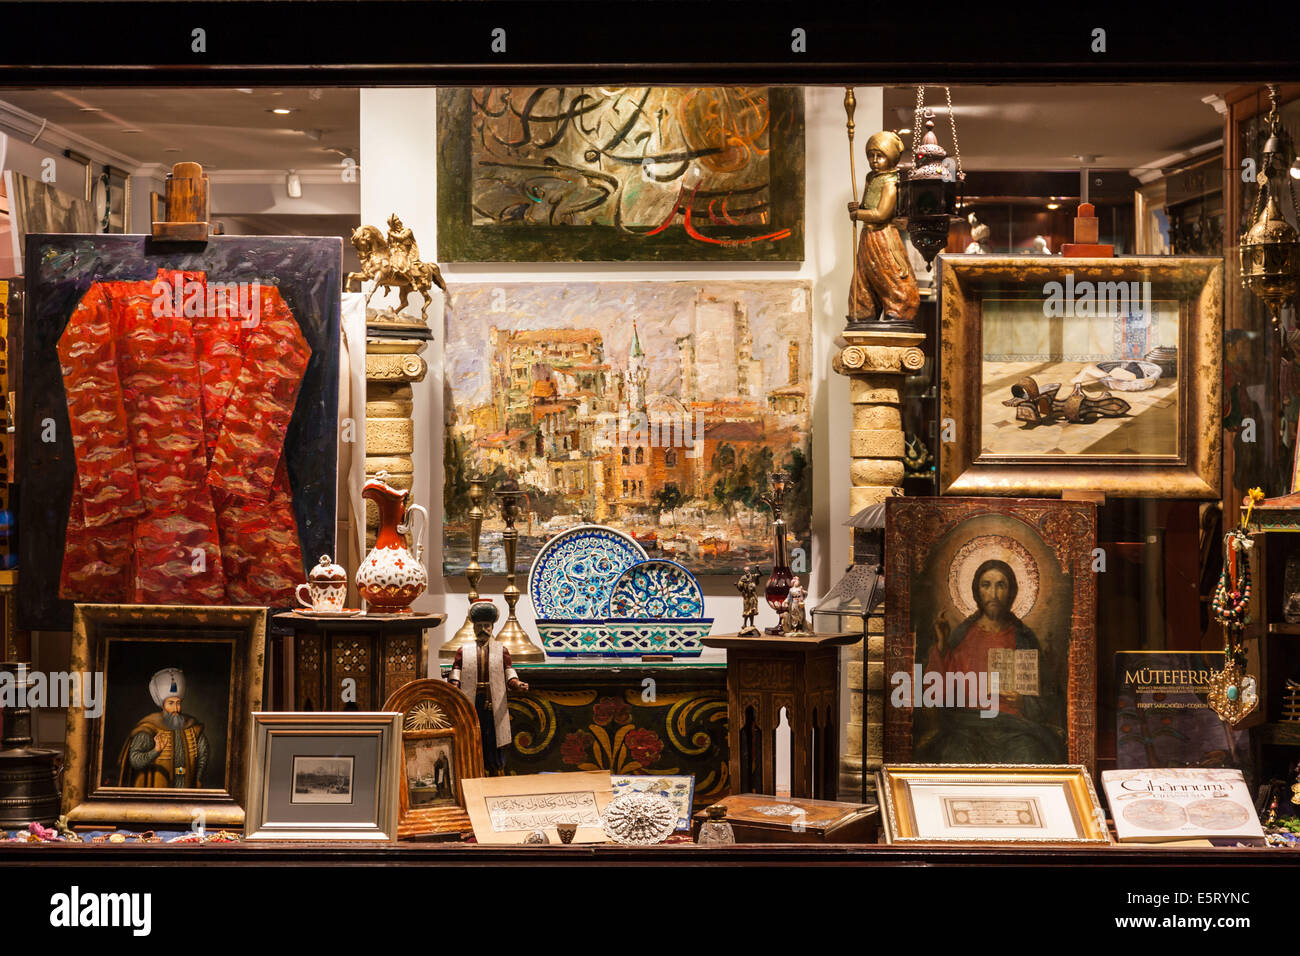 Antique shop in Istanbul, Turkey. - Stock Image